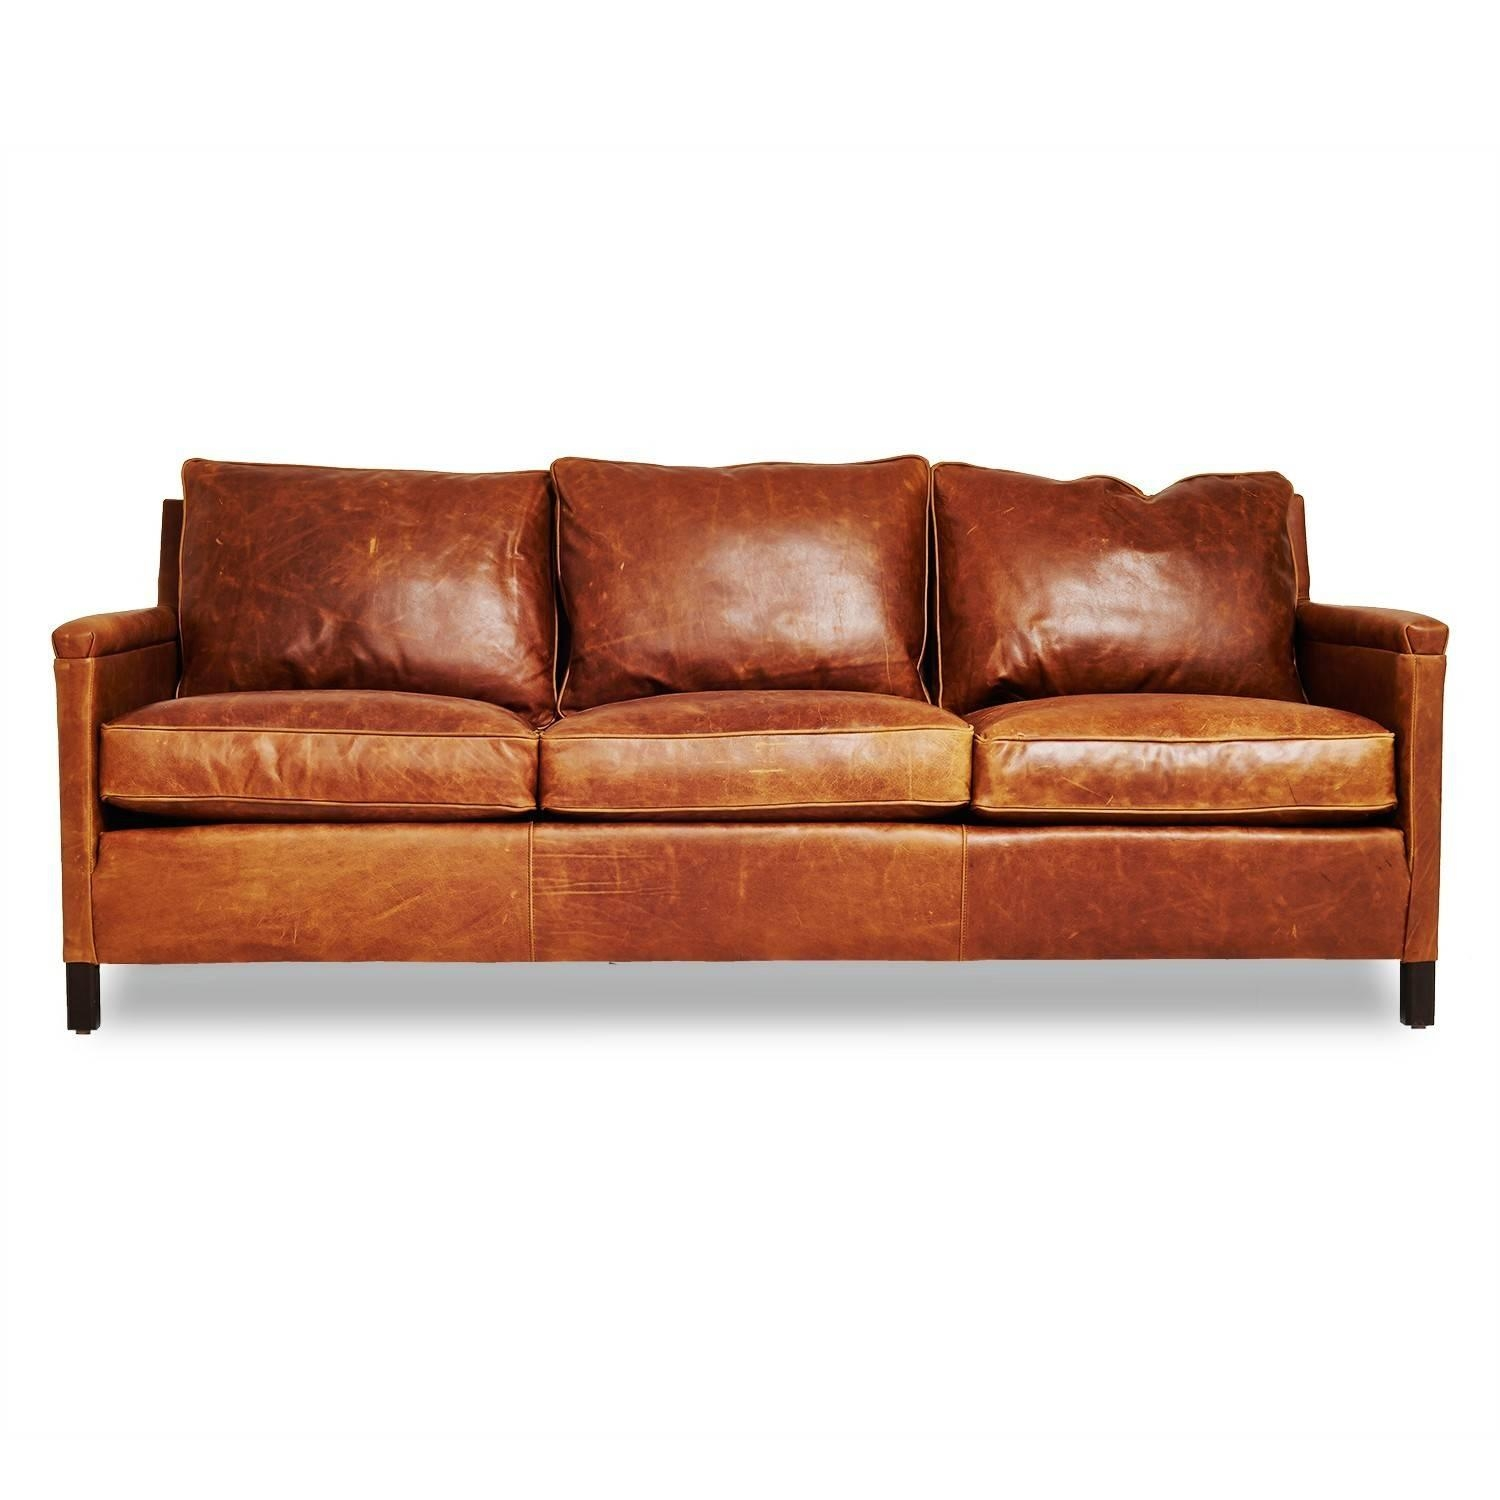 Irving Place Heston Leather Sofa – Abc Carpet & Home With Victorian Leather Sofas (View 20 of 20)